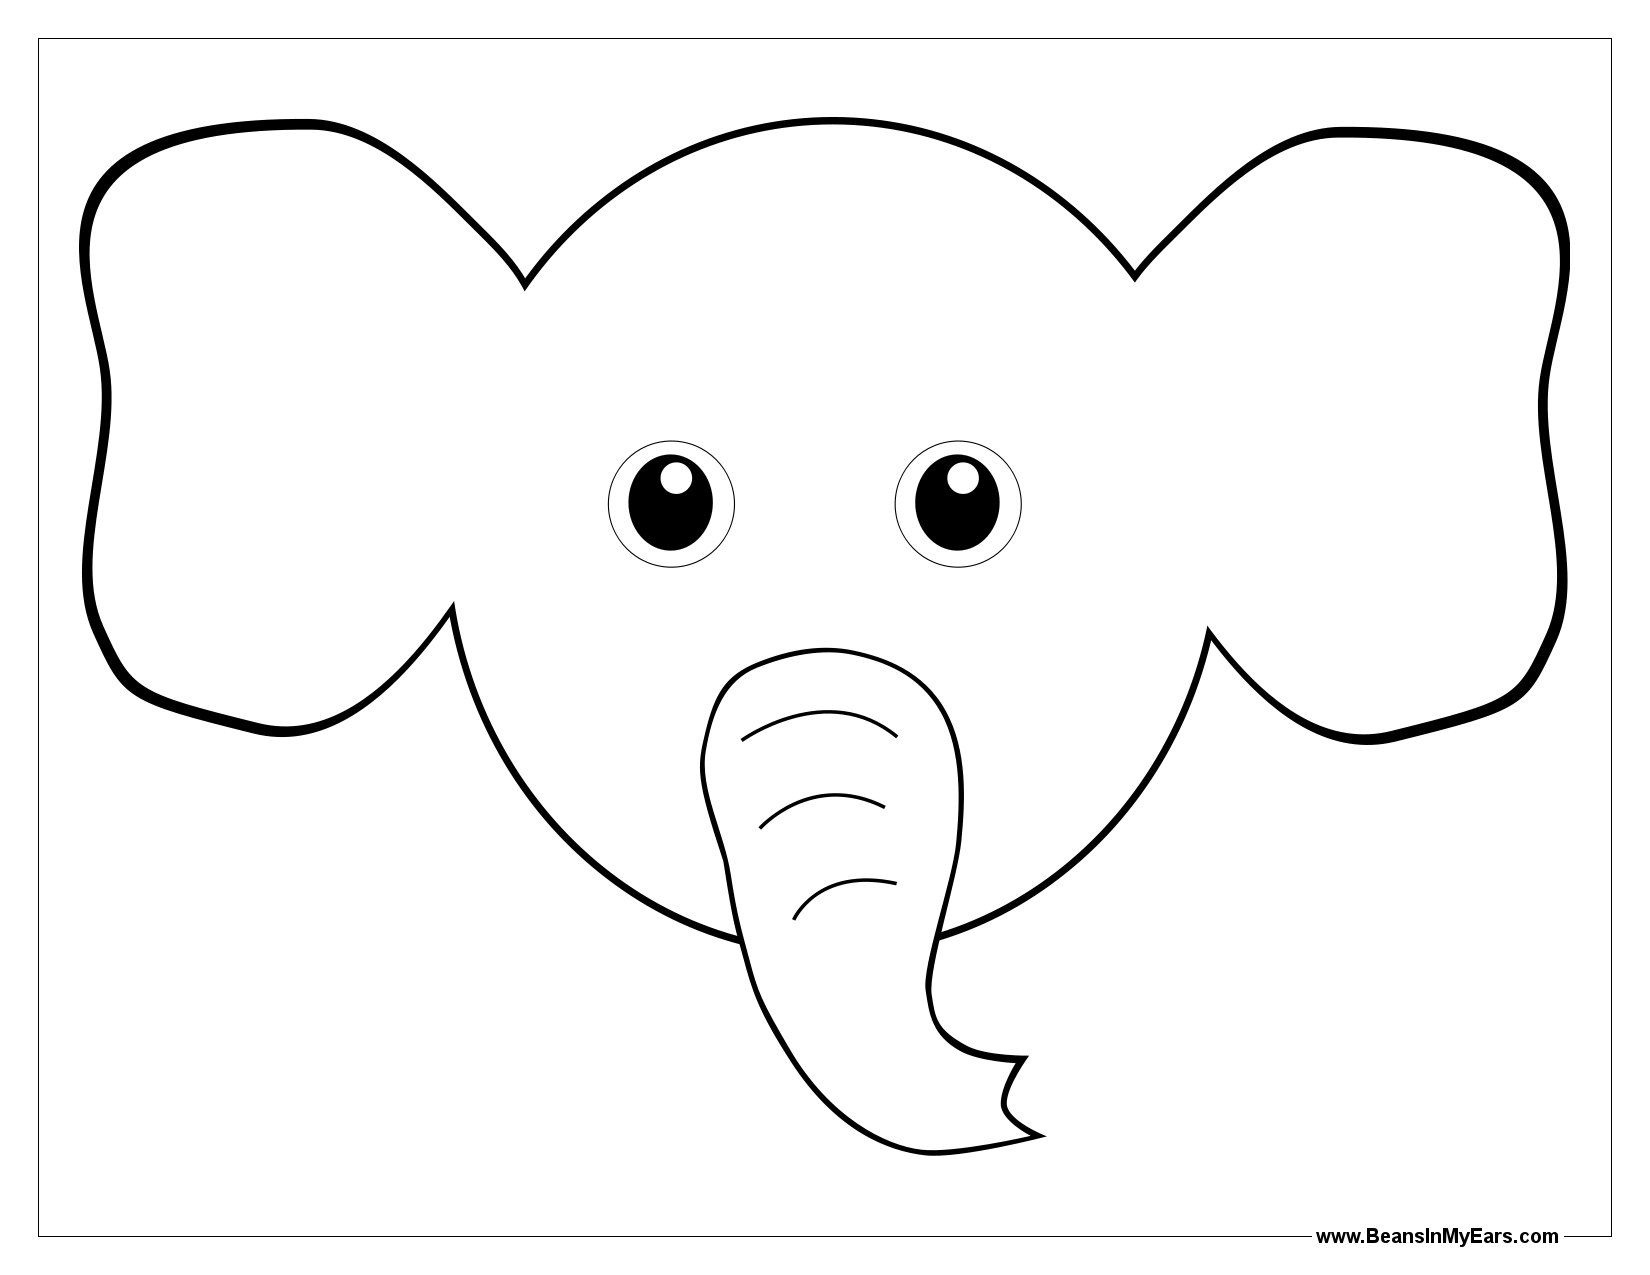 Elephant Head Coloring Page Animal Coloring Pages Deer Coloring